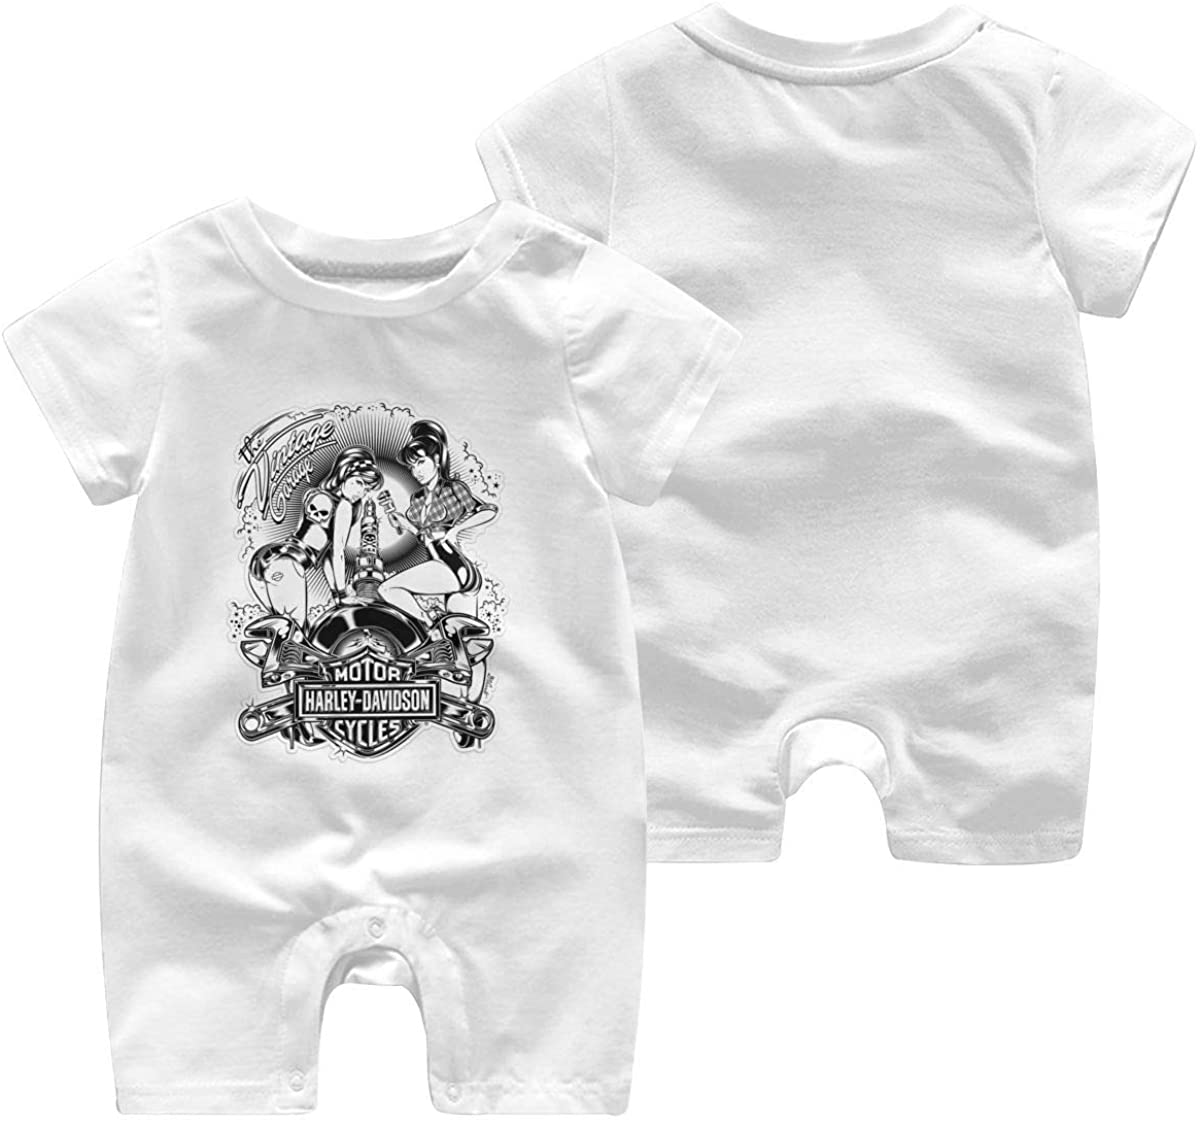 Harley Davidson One Piece Outfits Baby Solid Color Rompers with Button Kids Short Sleeve Playsuit Jumpsuits Cotton Clothing 18 Months White